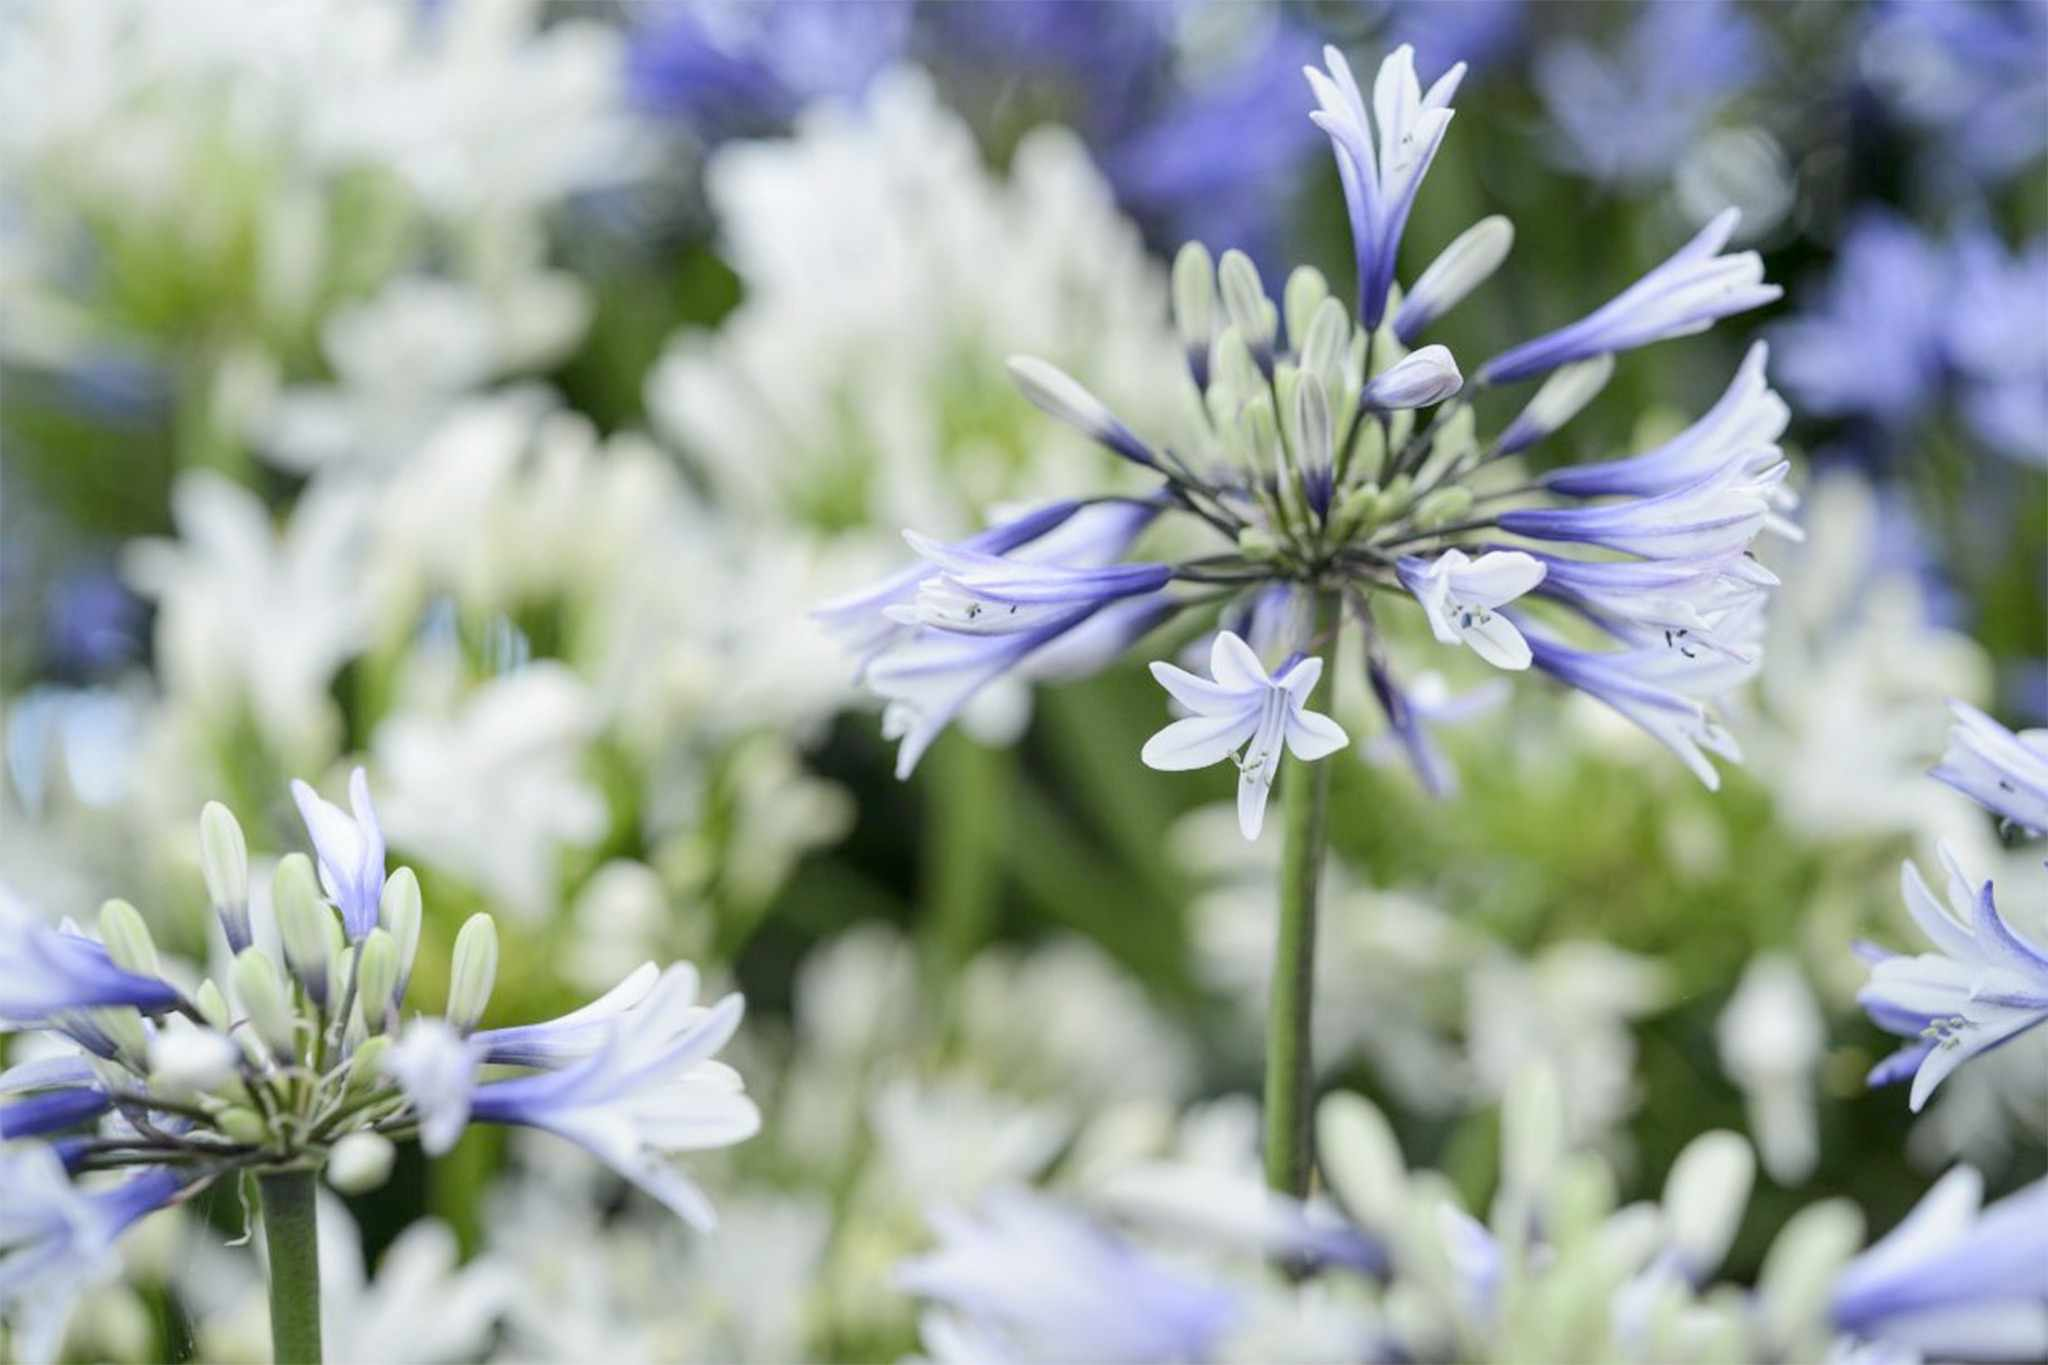 Get agapanthus flowers every year